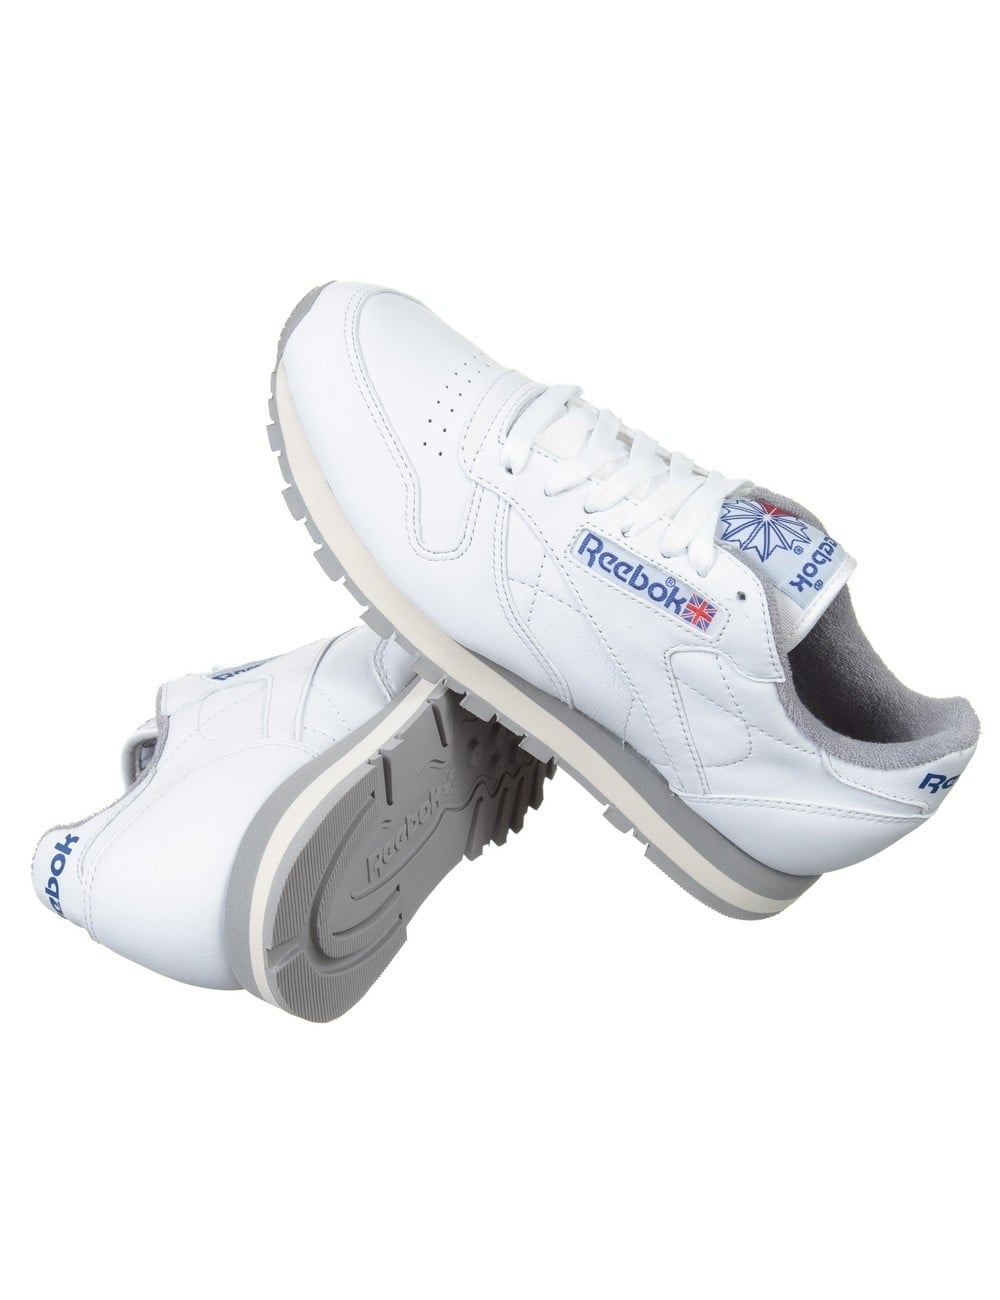 b01f45946b6 Reebok CL Leather R12 Shoes - White Grey Sand - Footwear from Fat ...